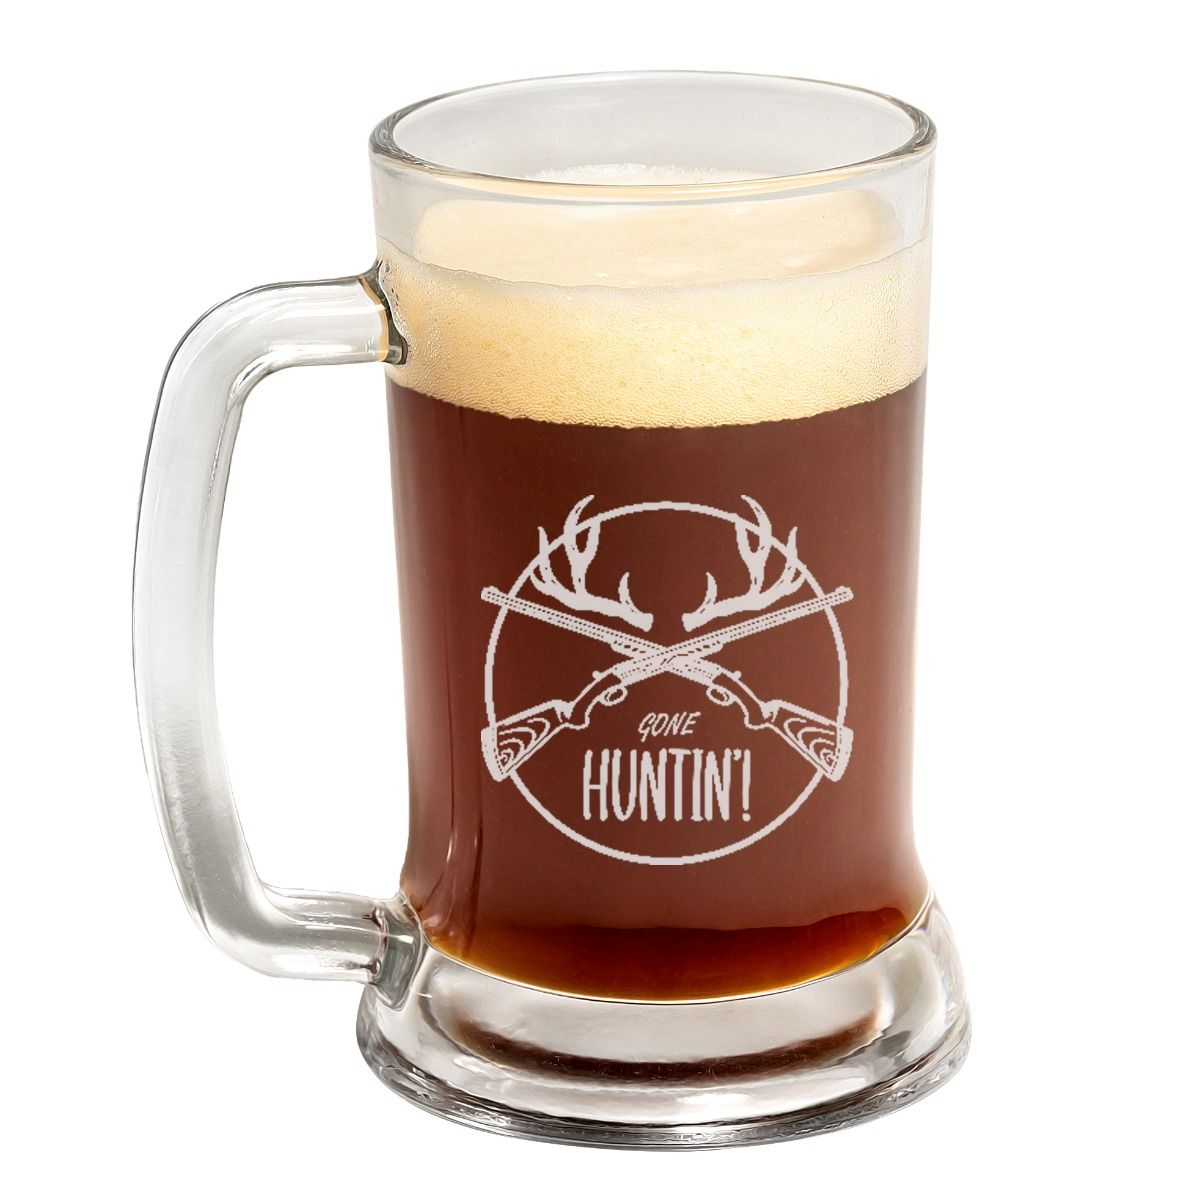 Gone huntin father's day beer mug